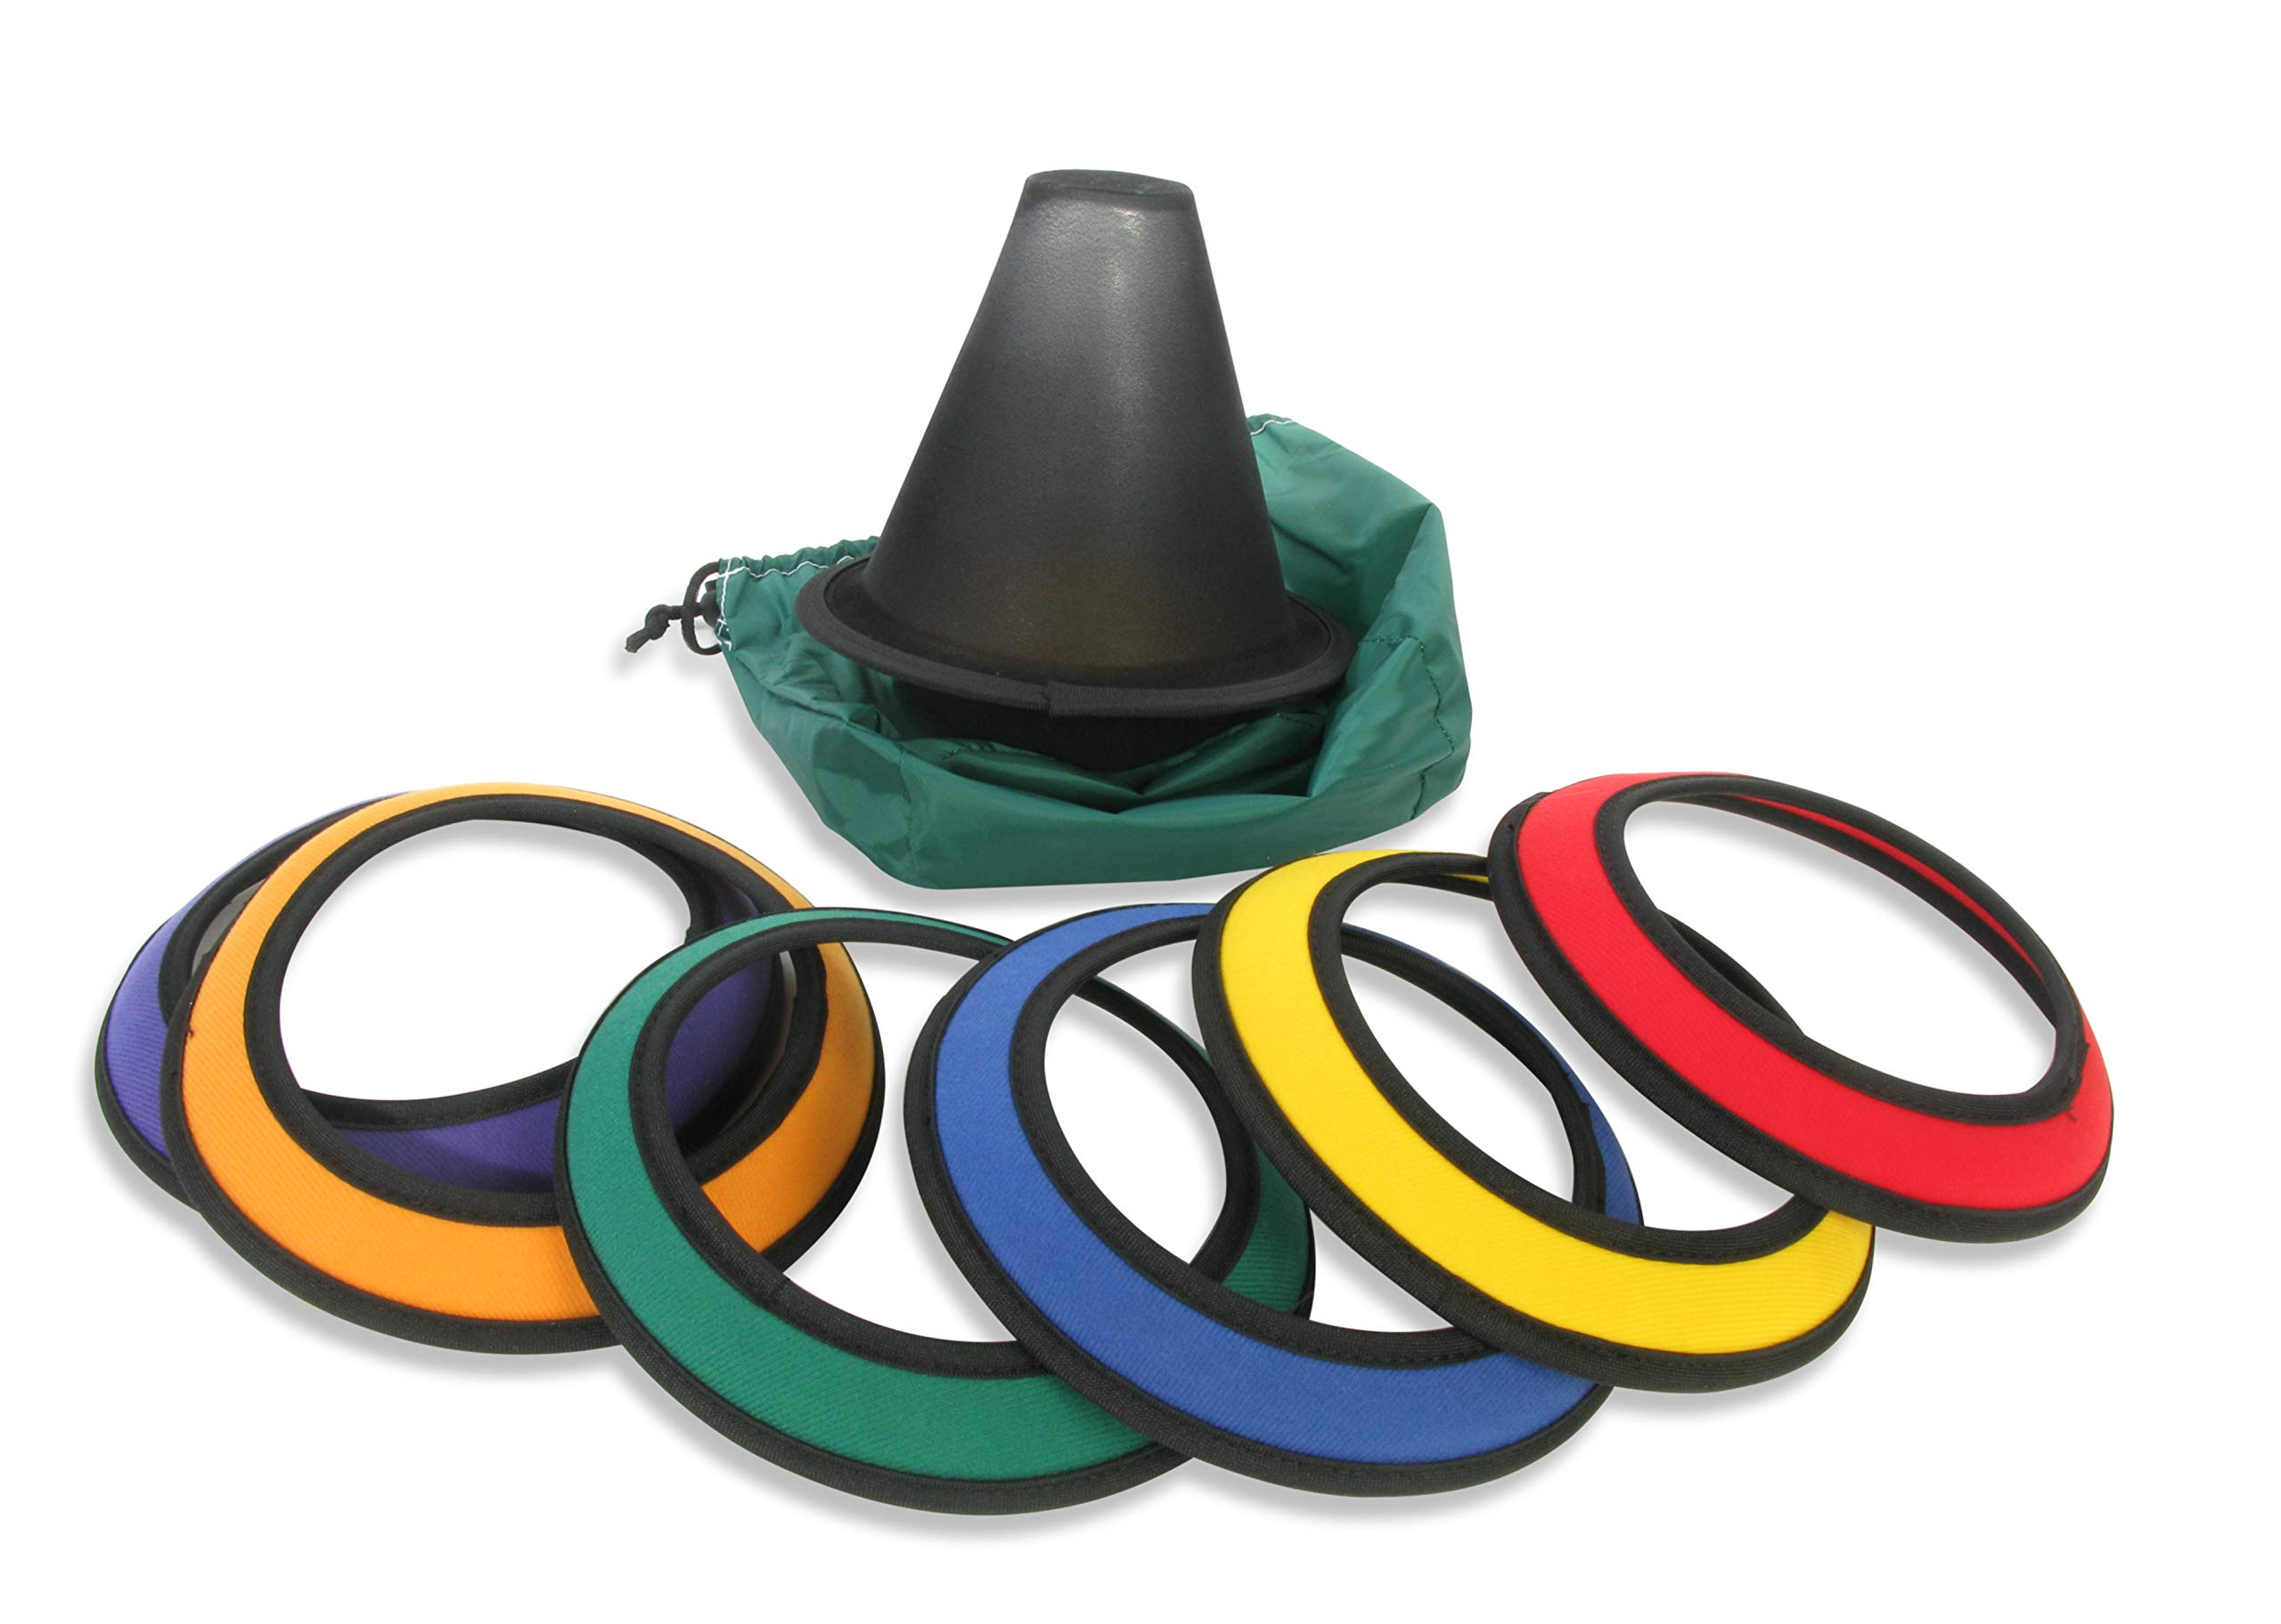 American Educational Products Ring Toss Game Set by American Educational Products